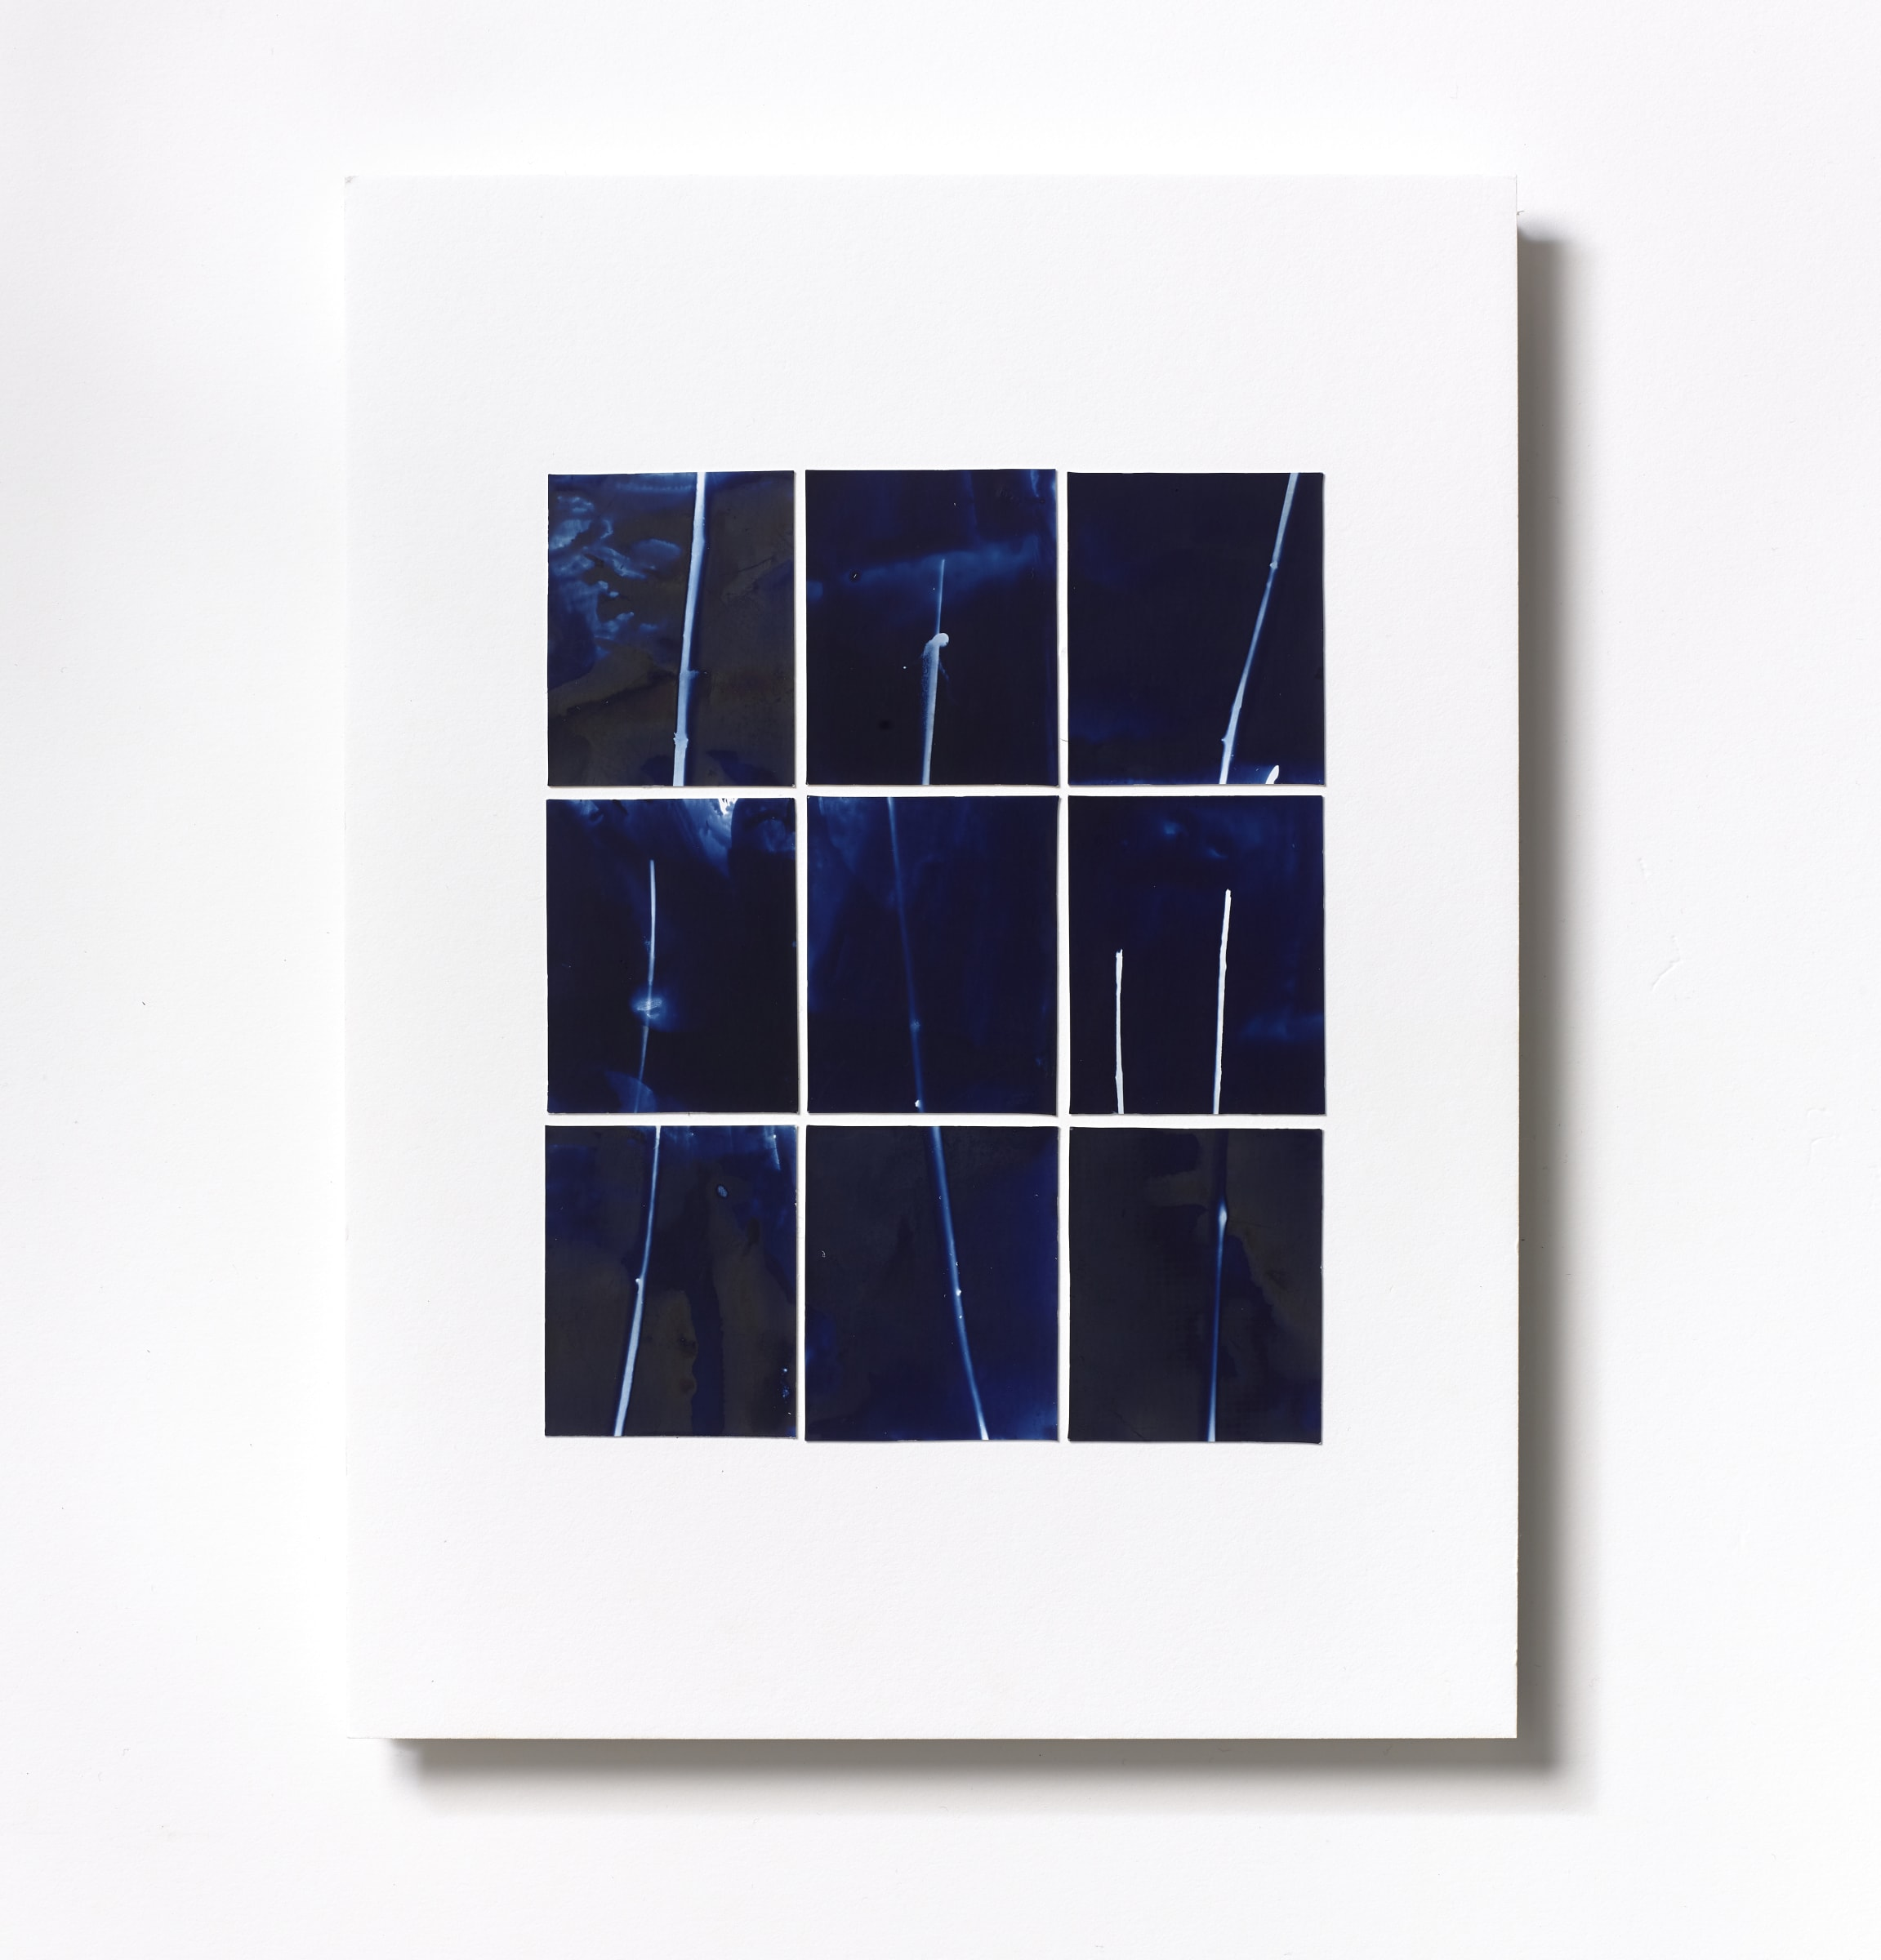 """<span class=""""link fancybox-details-link""""><a href=""""/content/feature/125/artworks574/"""">View Detail Page</a></span><div class=""""medium"""">Cyanotype Collage of nine hand-painted 2 7/8"""" x 1 7/8"""" cyanotype photograms on a 12 x 9 inch 8-ply museum board<br /> Print only<br /> Unique</div> <div class=""""dimensions"""">30.5 x 22.9 cm<br /> 12 x 9 in</div>"""